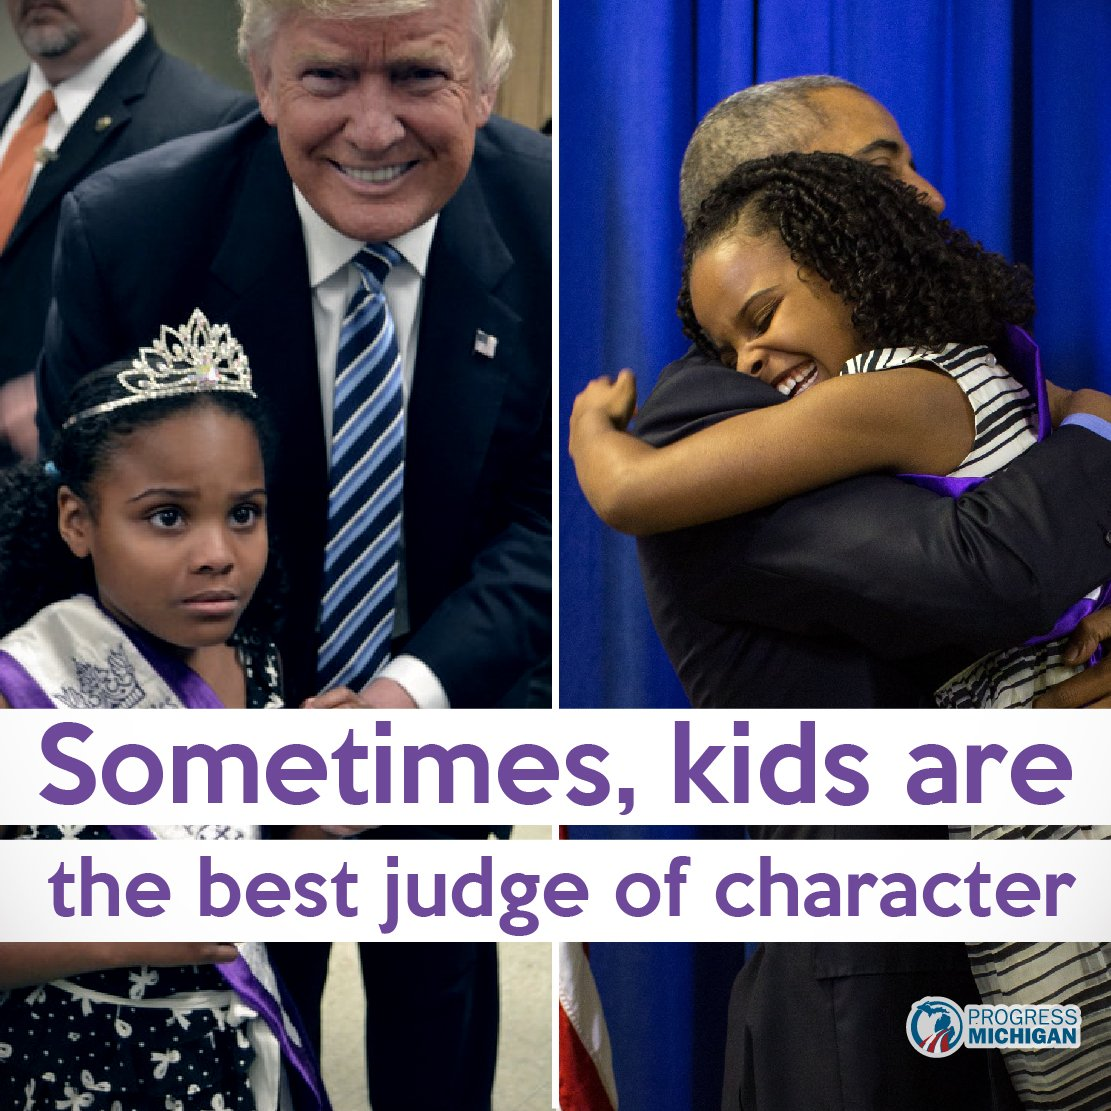 Little Miss Flint met @POTUS and @RealDonaldTrump. Her reactions say it all. #FlintWaterCrisis #Election2016 https://t.co/Z8yEUVnf7w